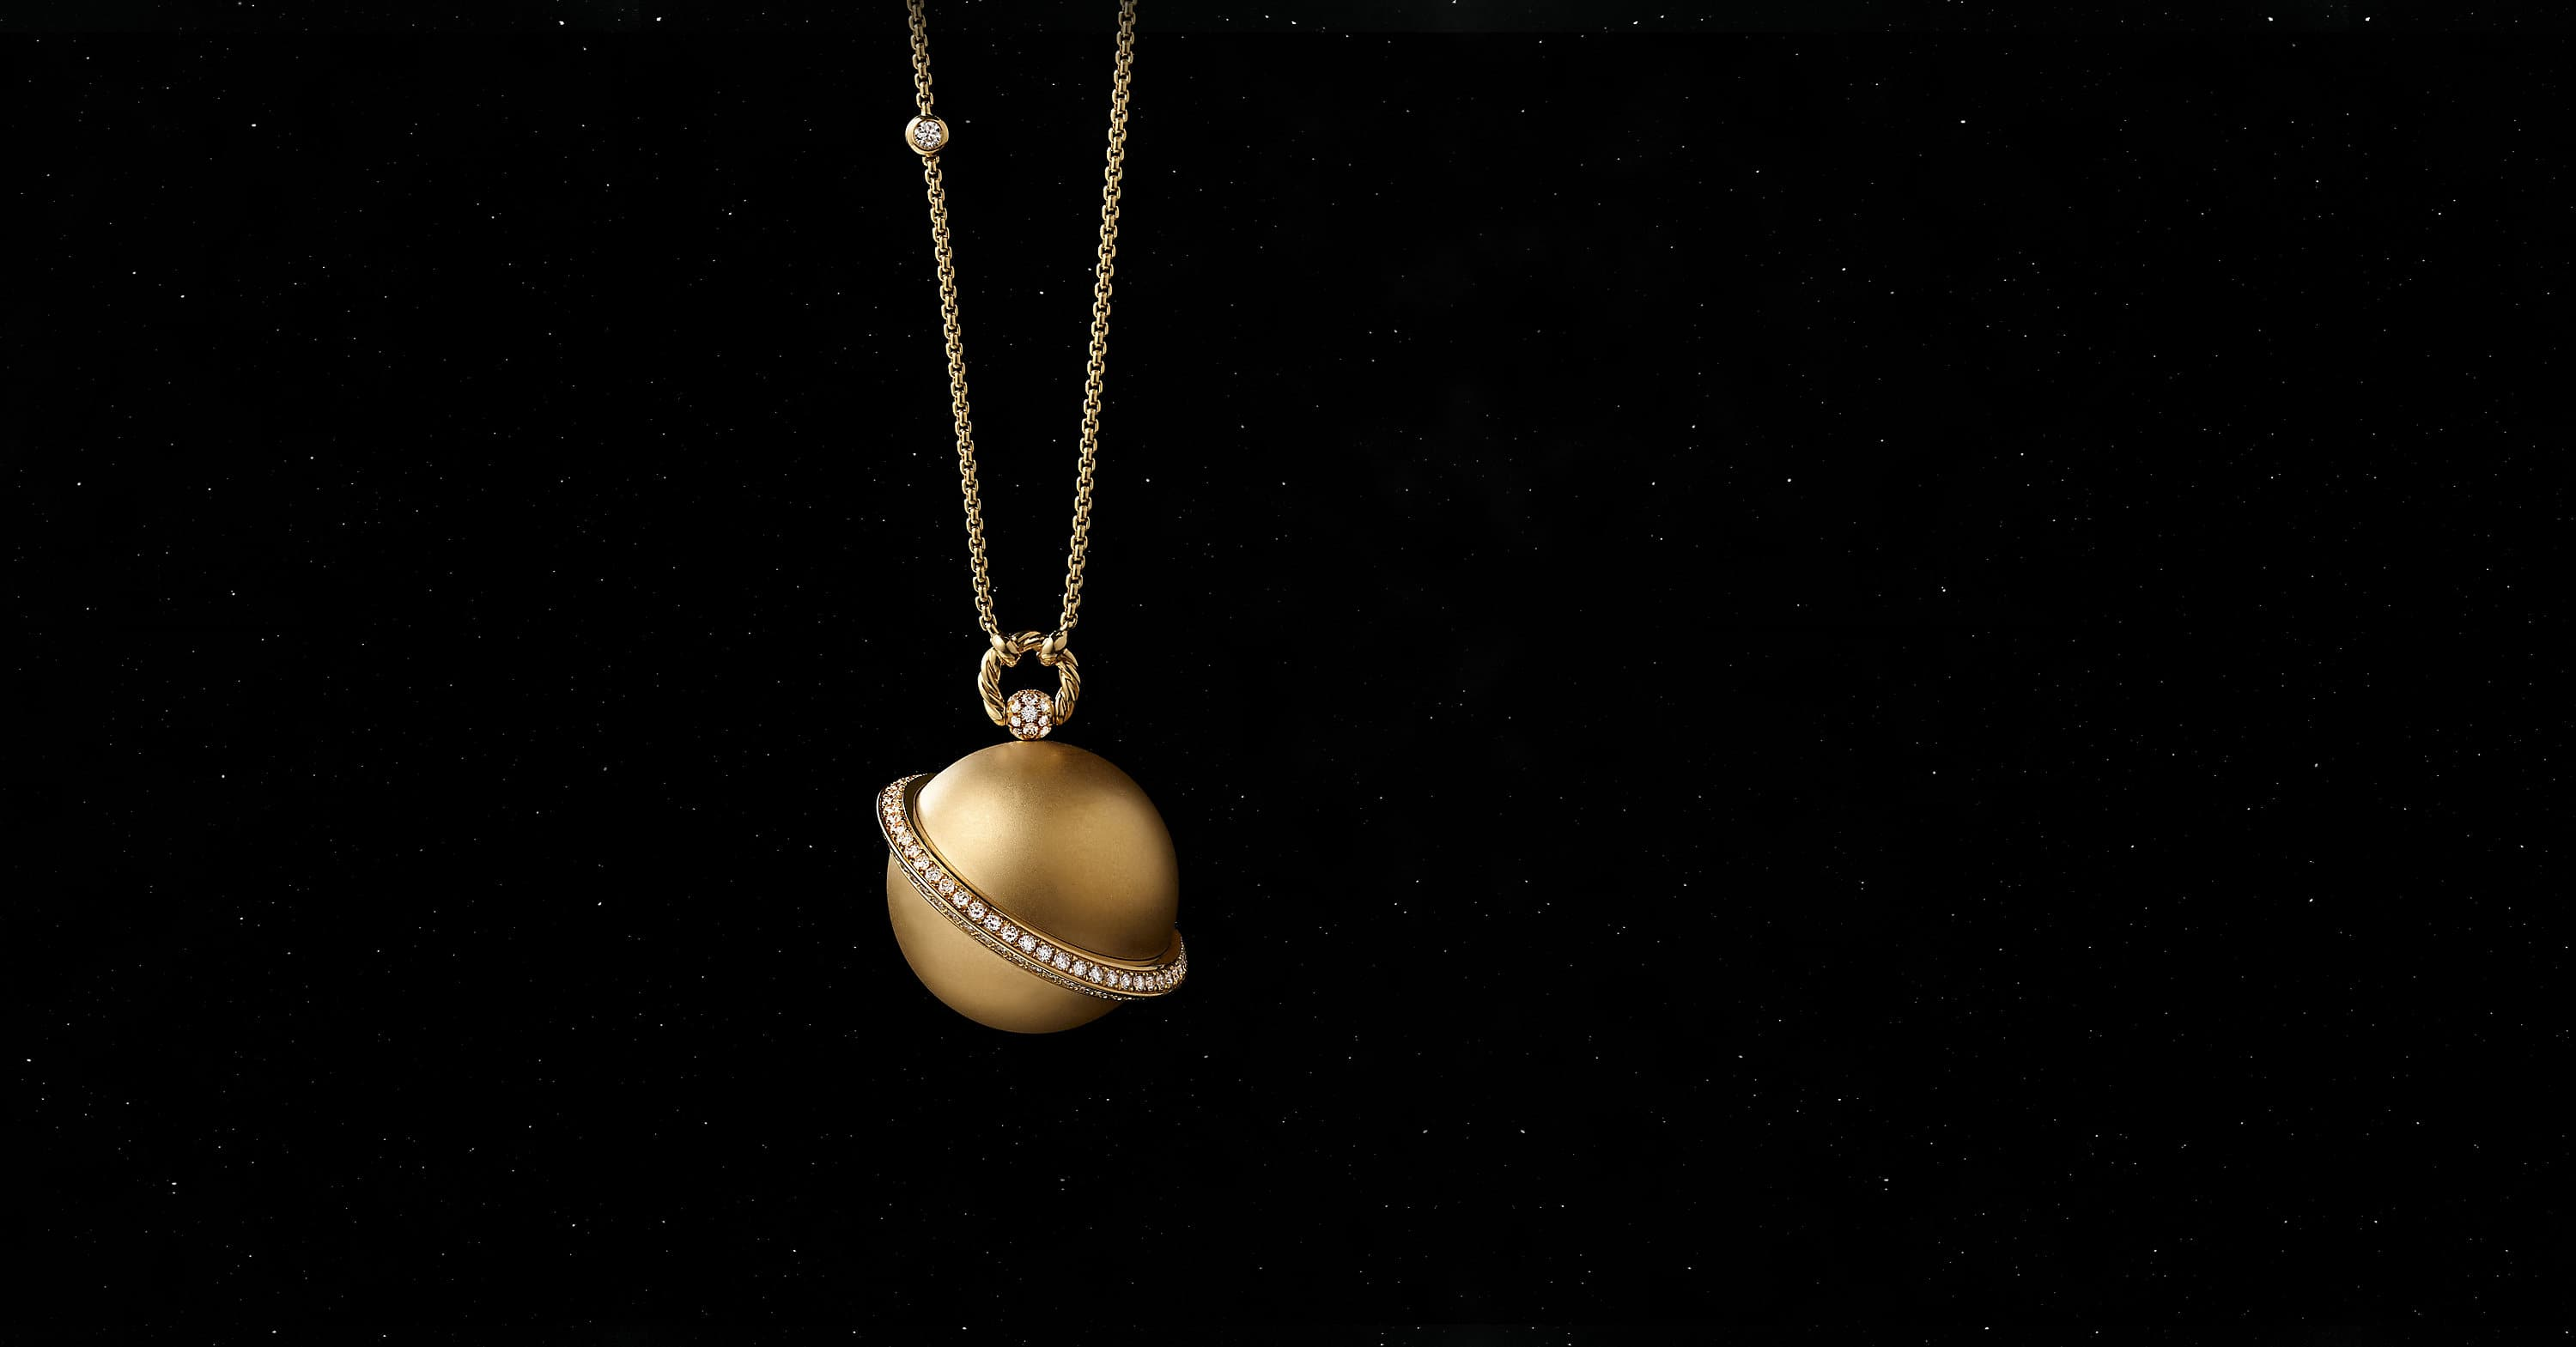 Solari Saturn Pendant Necklace in 18K Yellow Gold with Pavé